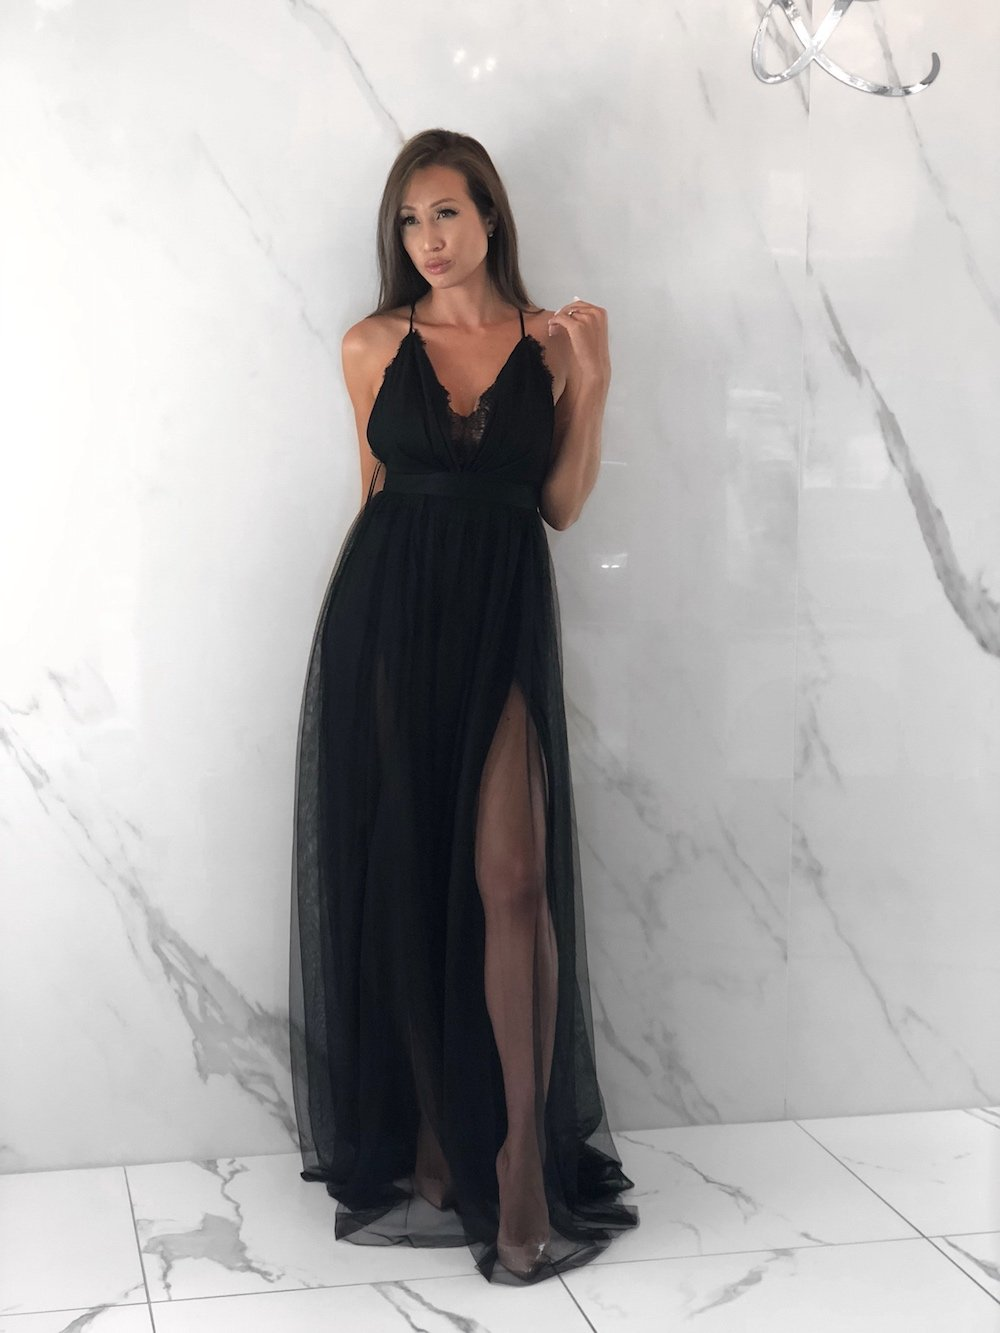 Rouge Black Dress, Women's Black Dresses